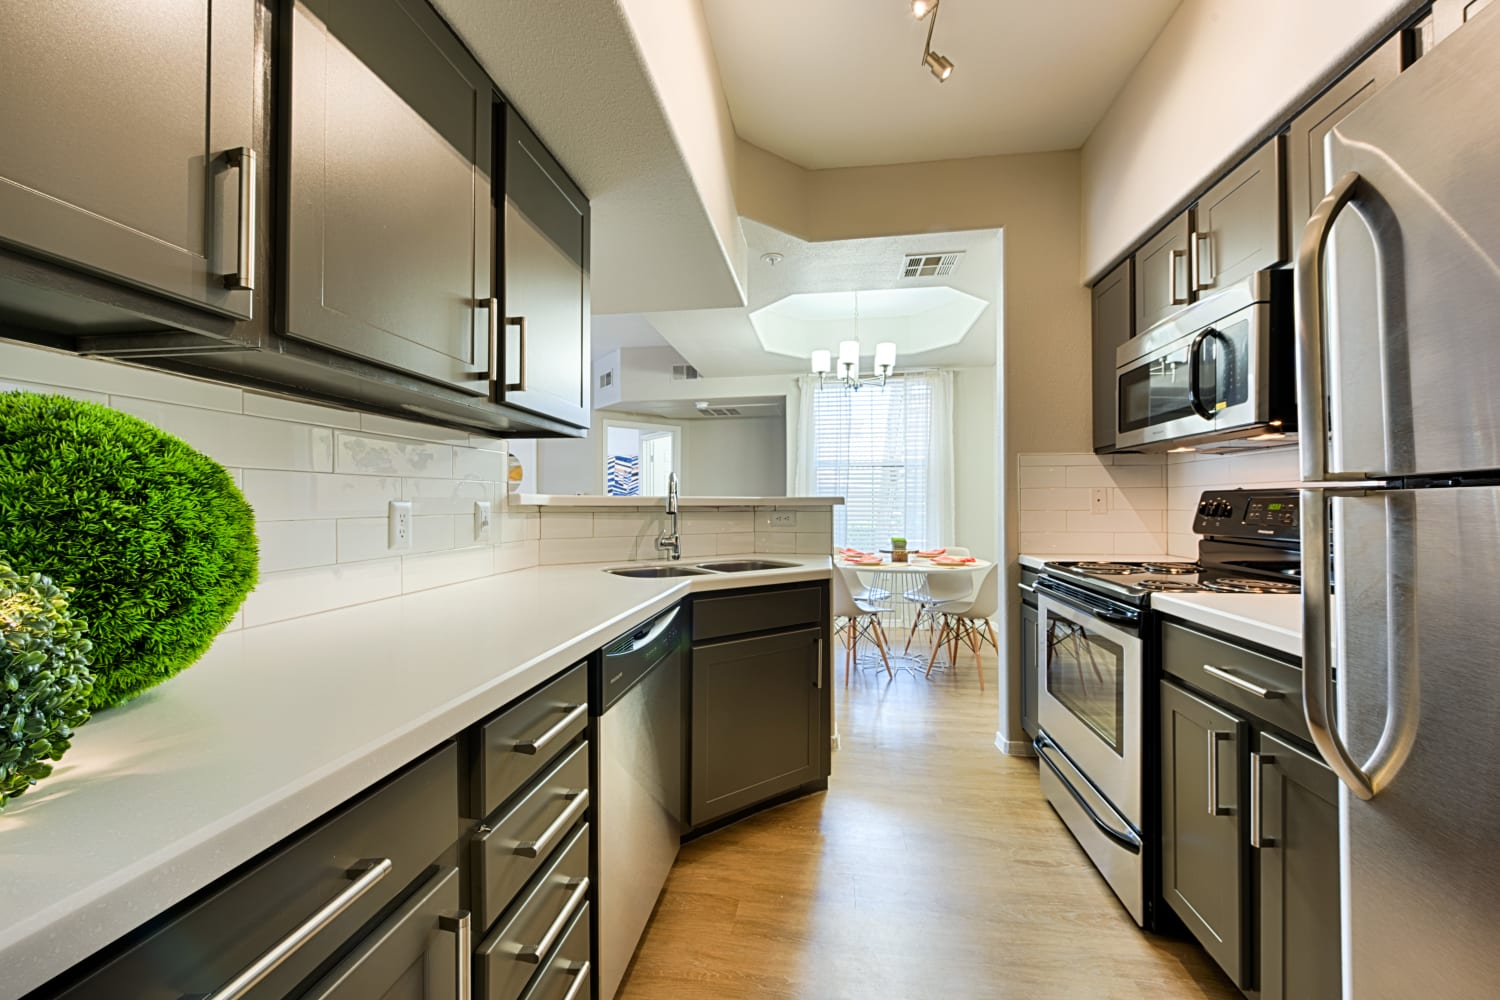 Sonoran Vista Apartments in Scottsdale, Arizona, offer modern and stylish kitchens